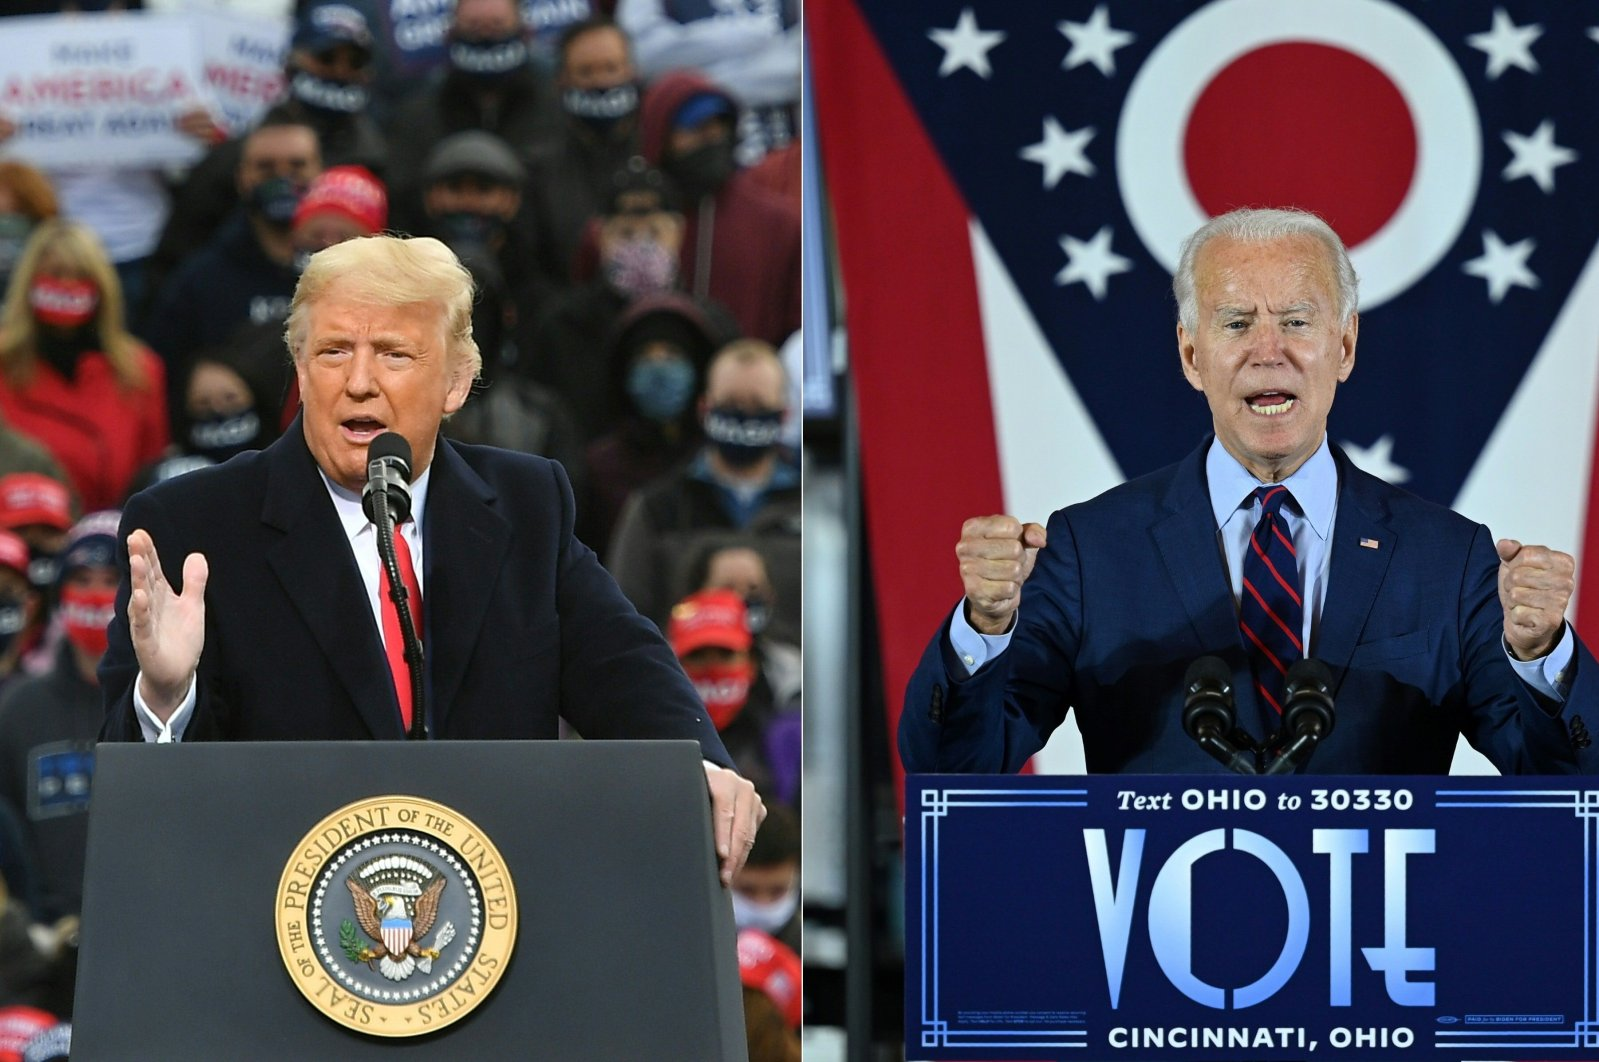 U.S. President Donald Trump (L) speaks during a campaign rally at Manchester-Boston Regional Airport in Londonderry, New Hampshire, Oct. 25, 2020, and  Democratic presidential candidate and former Vice President Joe Biden delivers remarks at a voter mobilization event in Cincinnati, Ohio, Oct. 12, 2020. (AFP Photo)